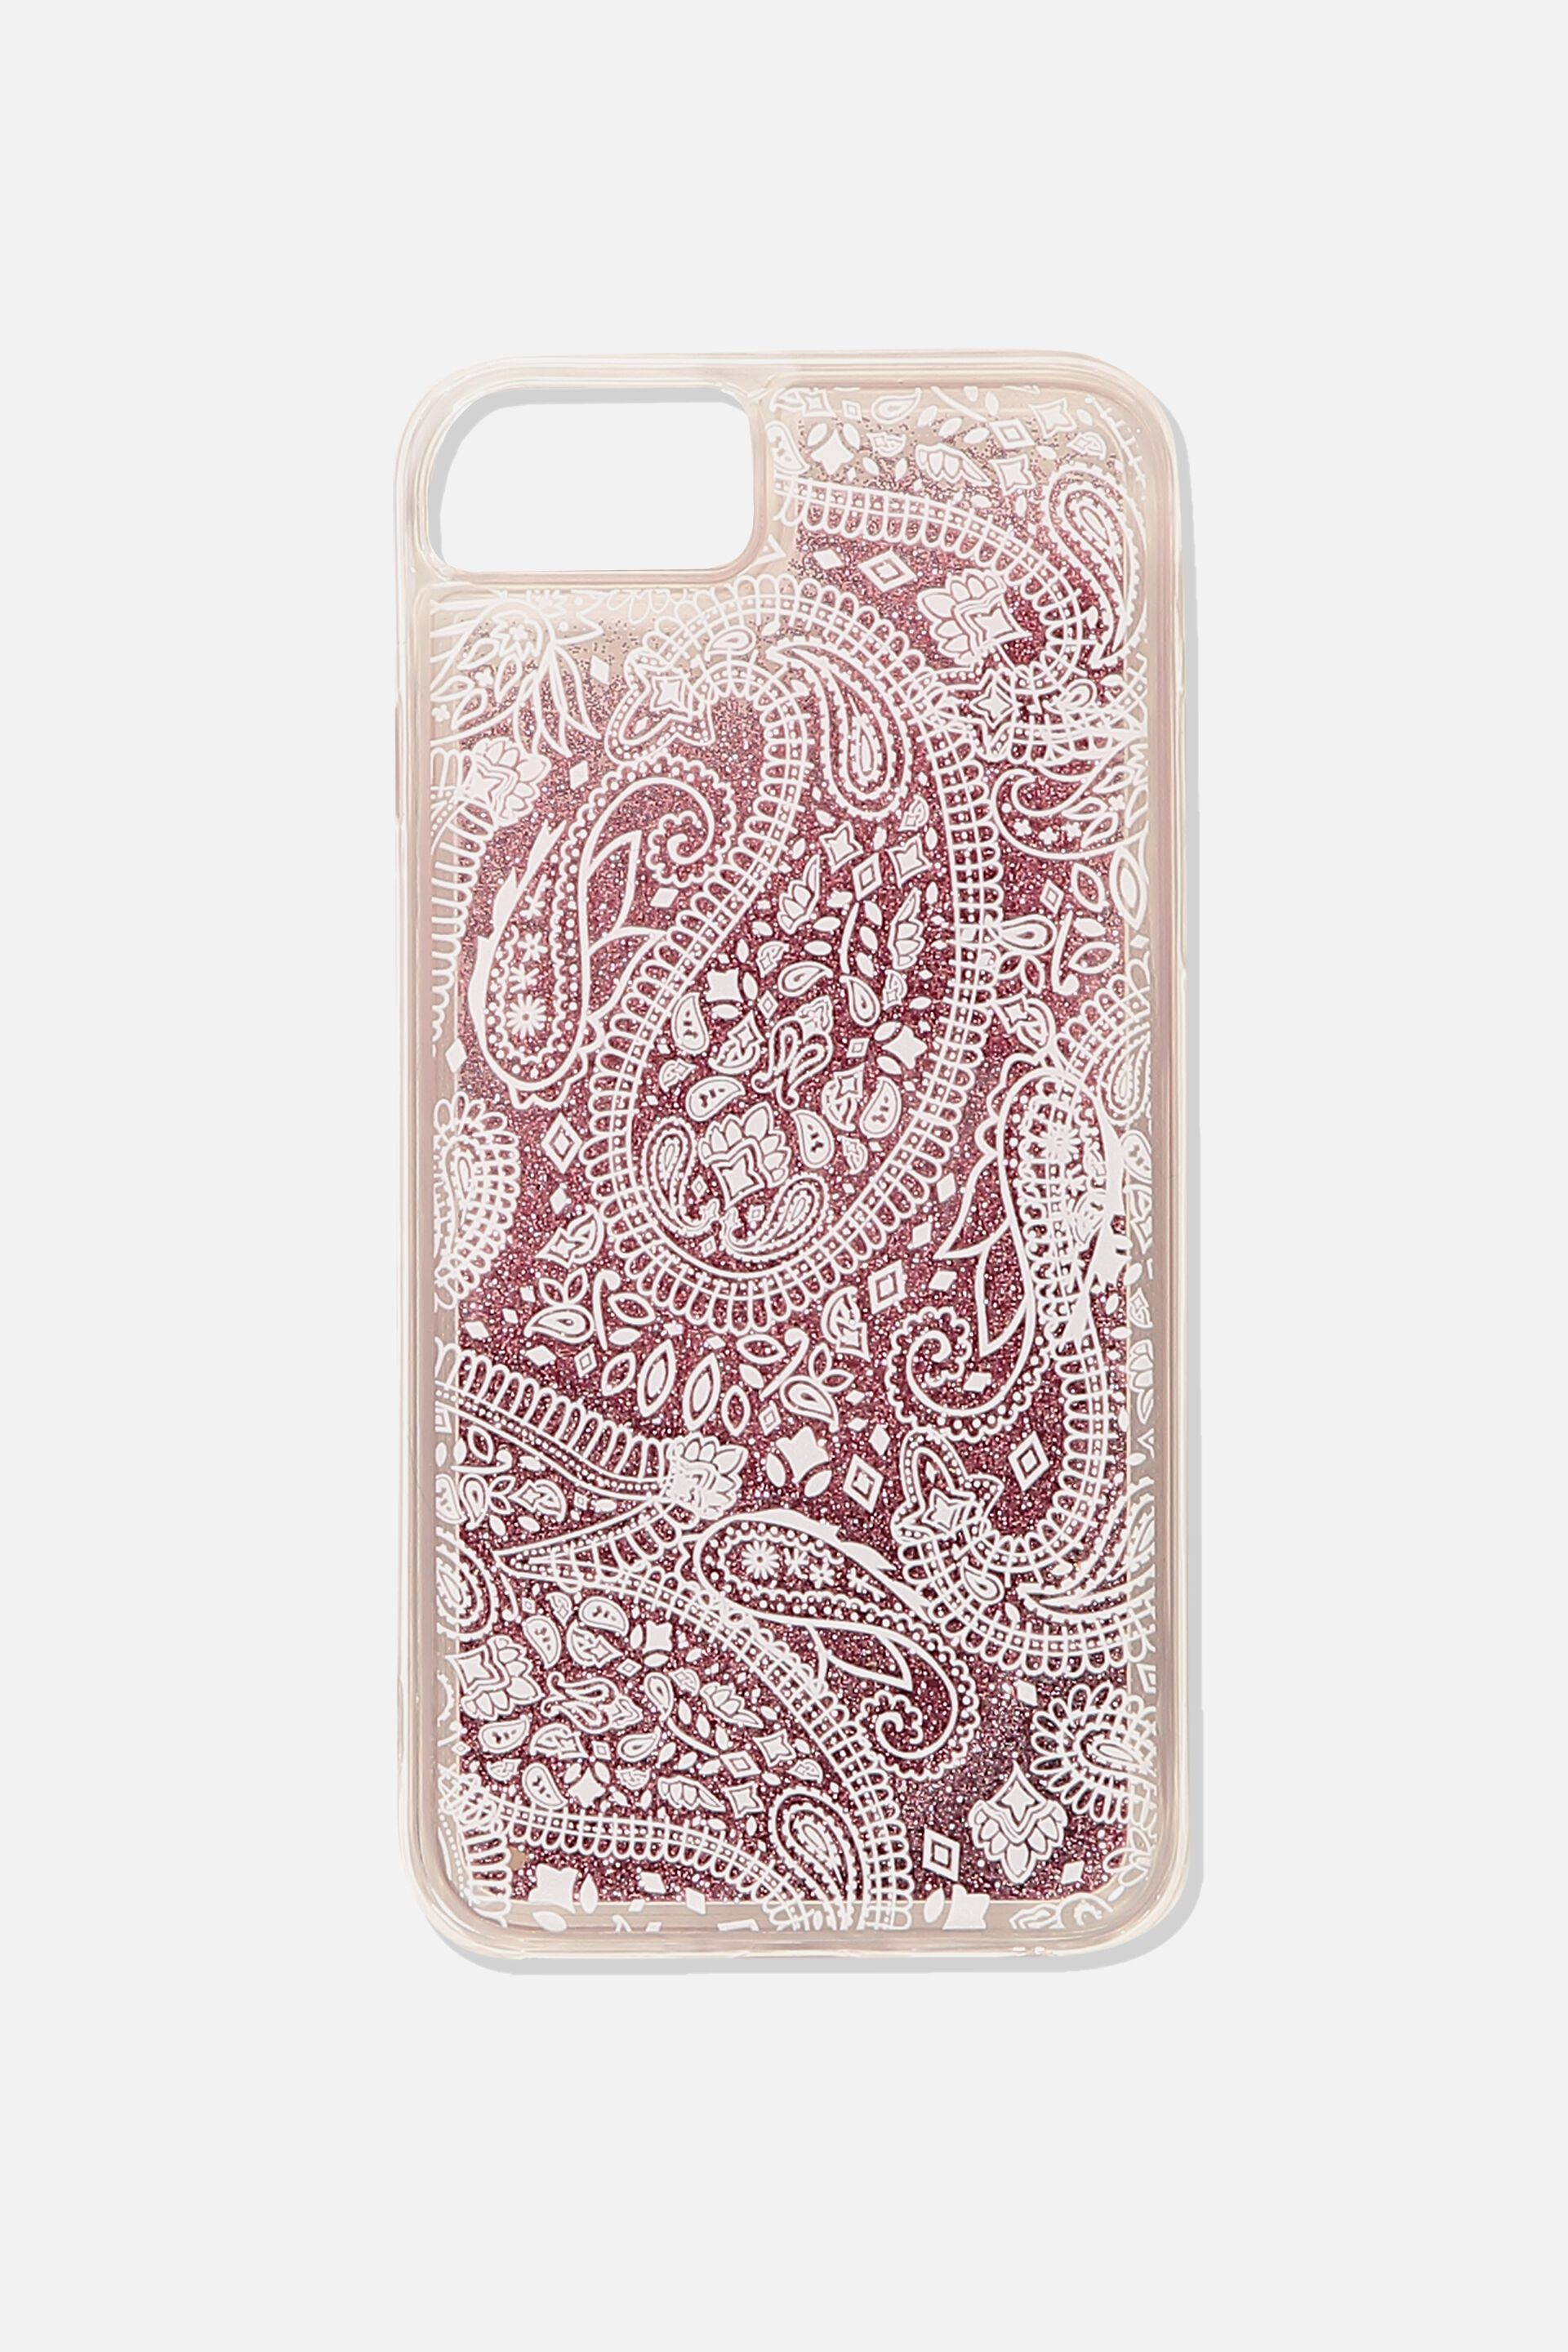 phone cases phone accessories \u0026 more cotton onshake it phone case universal 6,7,8, white lace